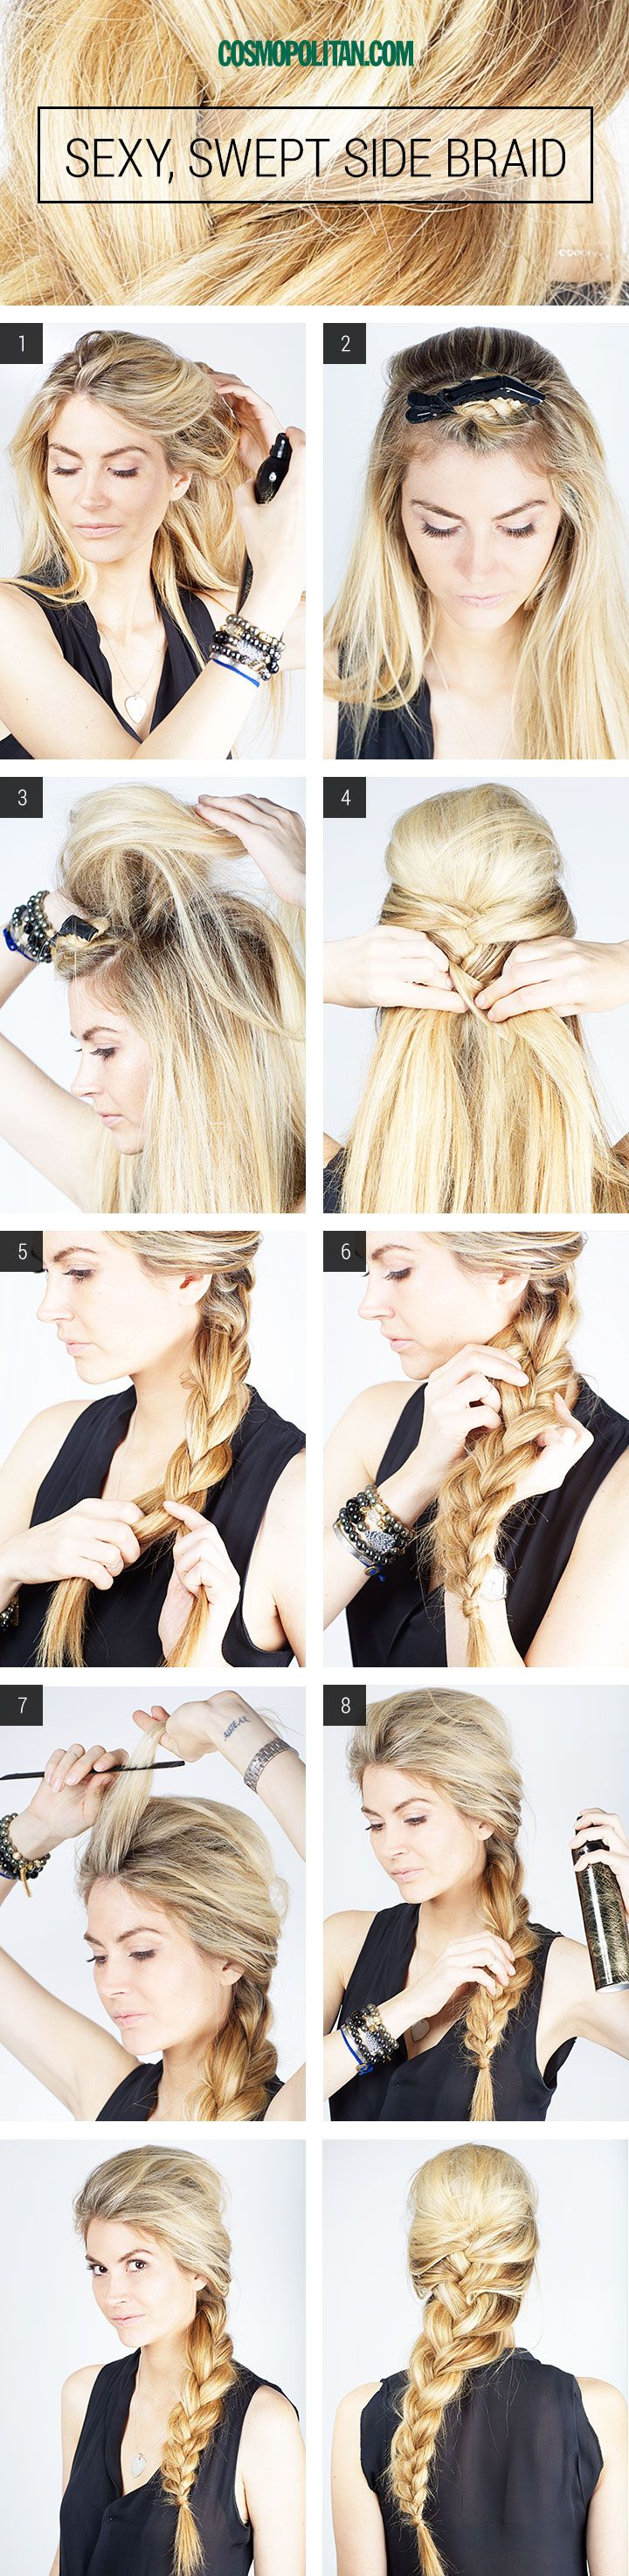 Volume side braid